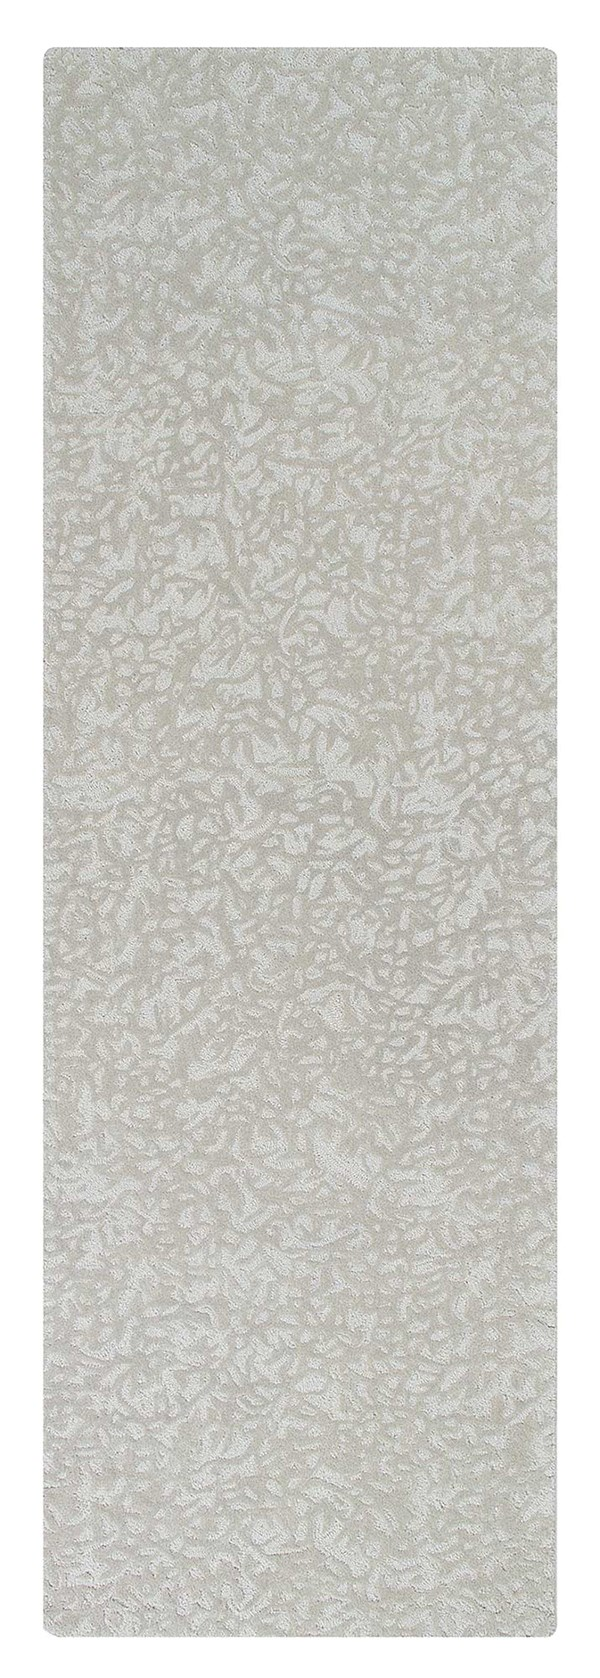 Pewter (10310) Textured Solid Area Rug